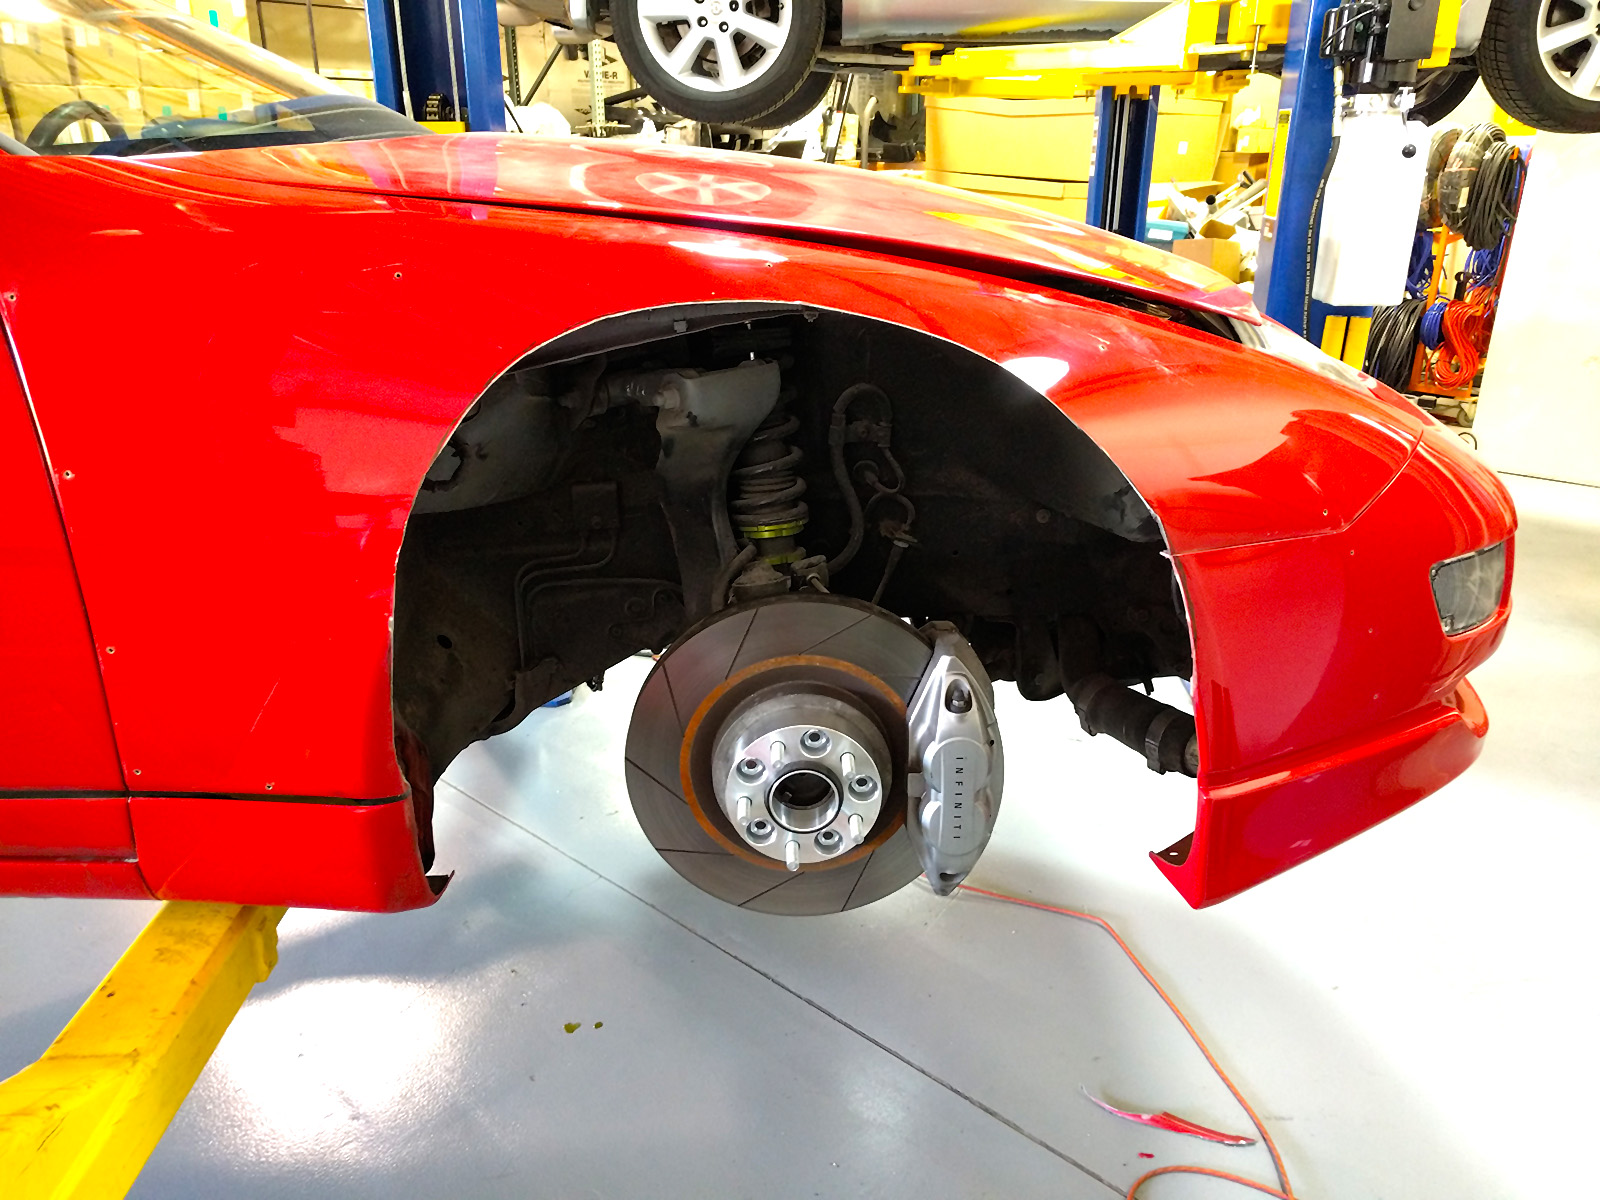 Front fenders opened up a lot more to allow the wheel to swing through its full range of motion.